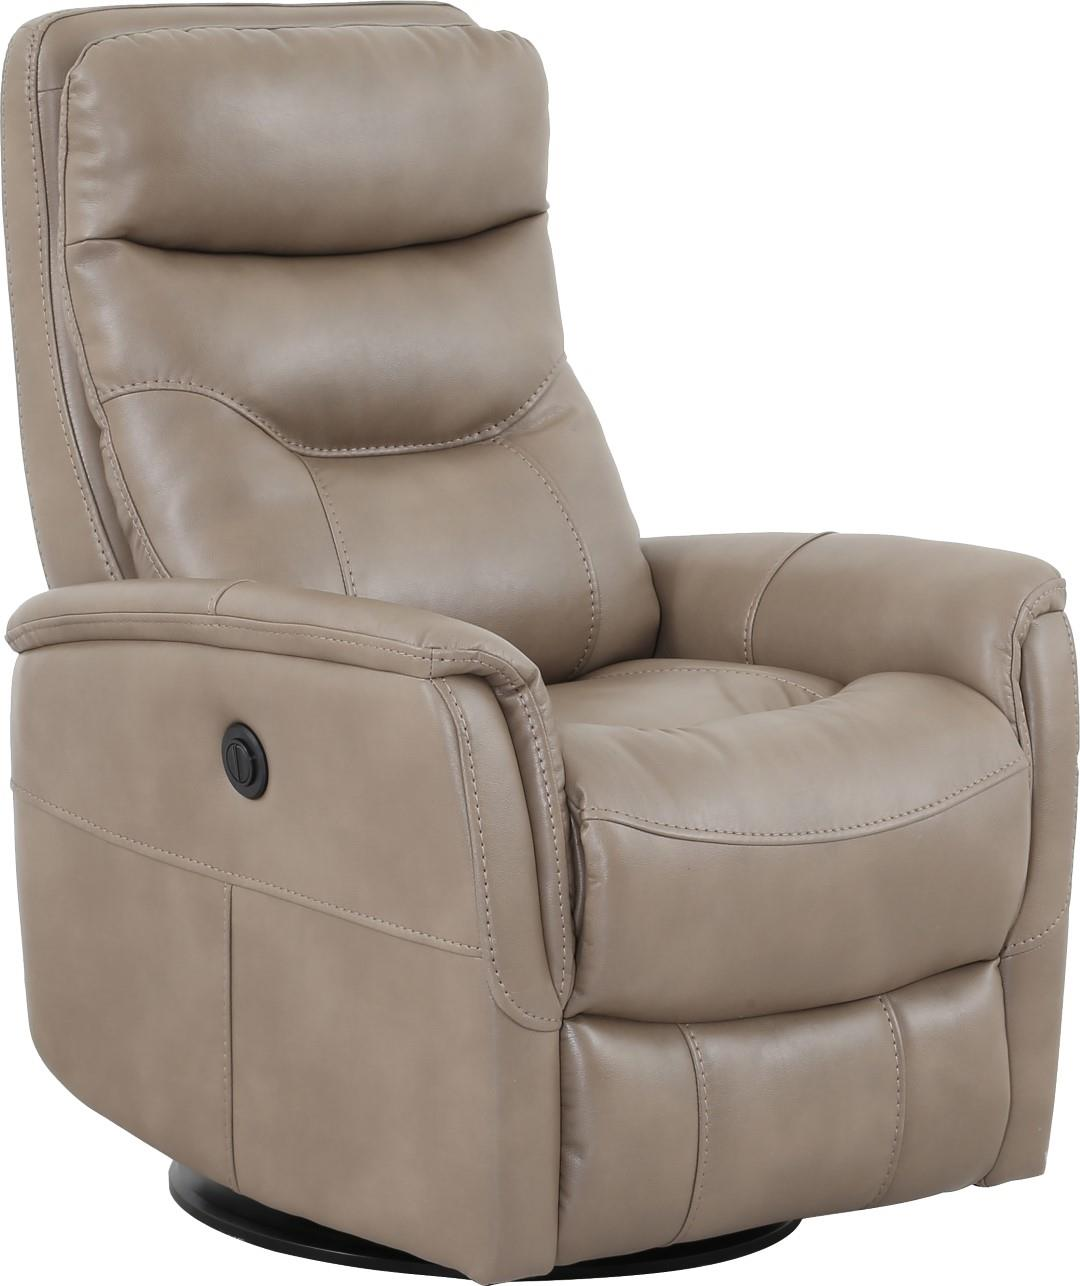 recliner depot the home gray furniture ashe acme recliners p